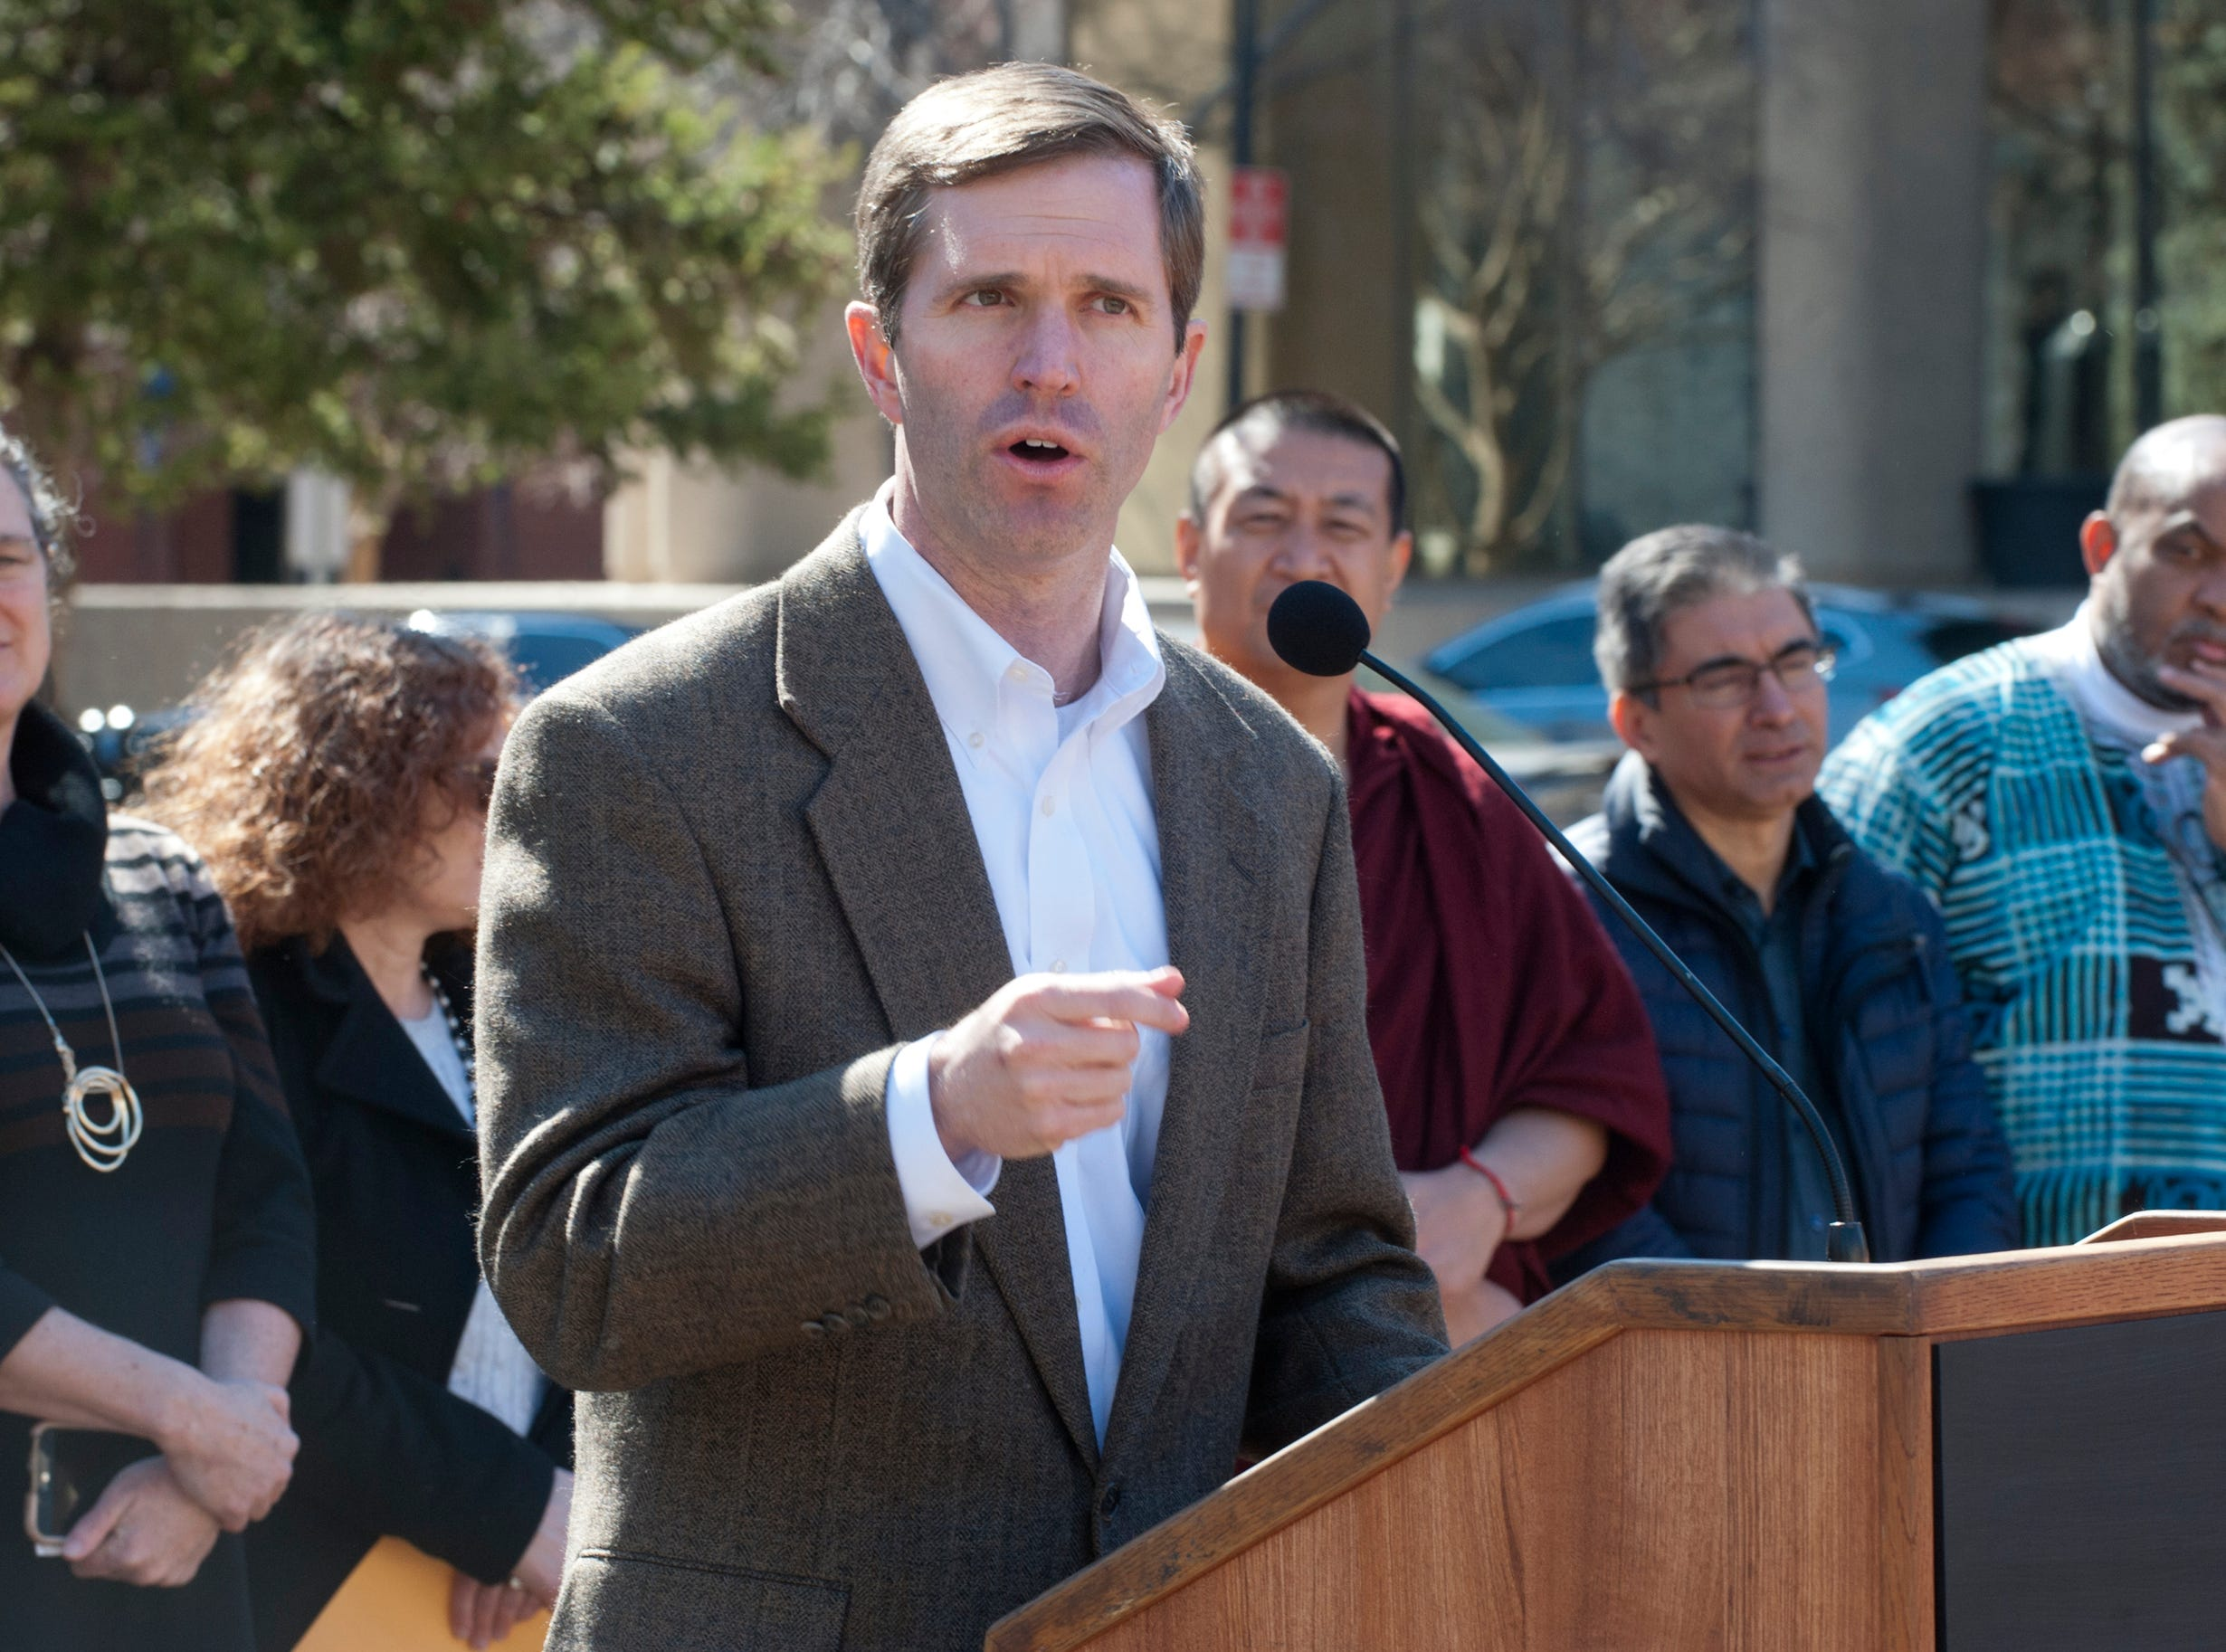 Kentucky State Attorney General Andy Beshear speaks at the vigil.